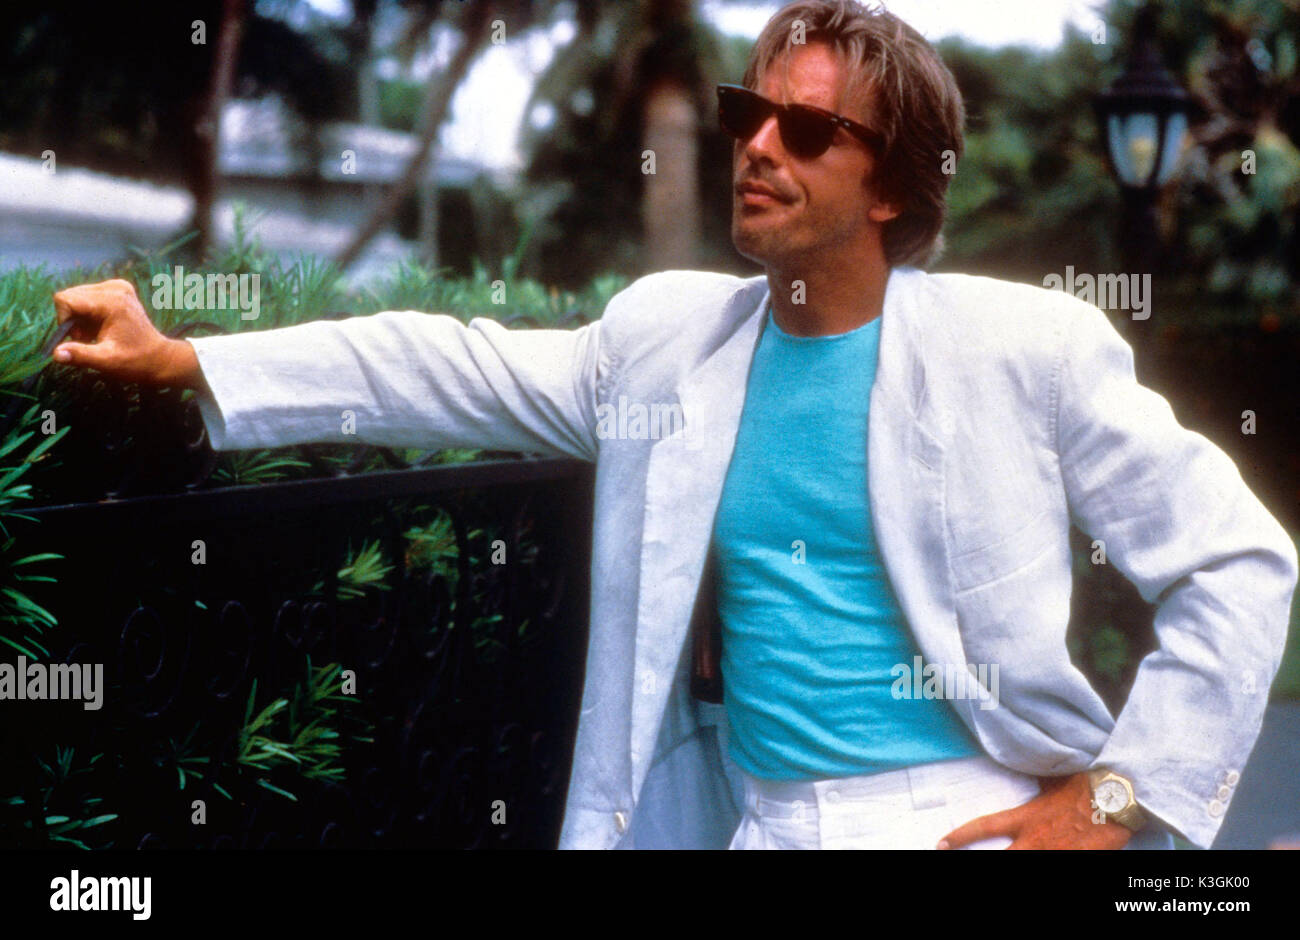 https://c8.alamy.com/compes/k3gk00/miami-vice-don-johnson-k3gk00.jpg